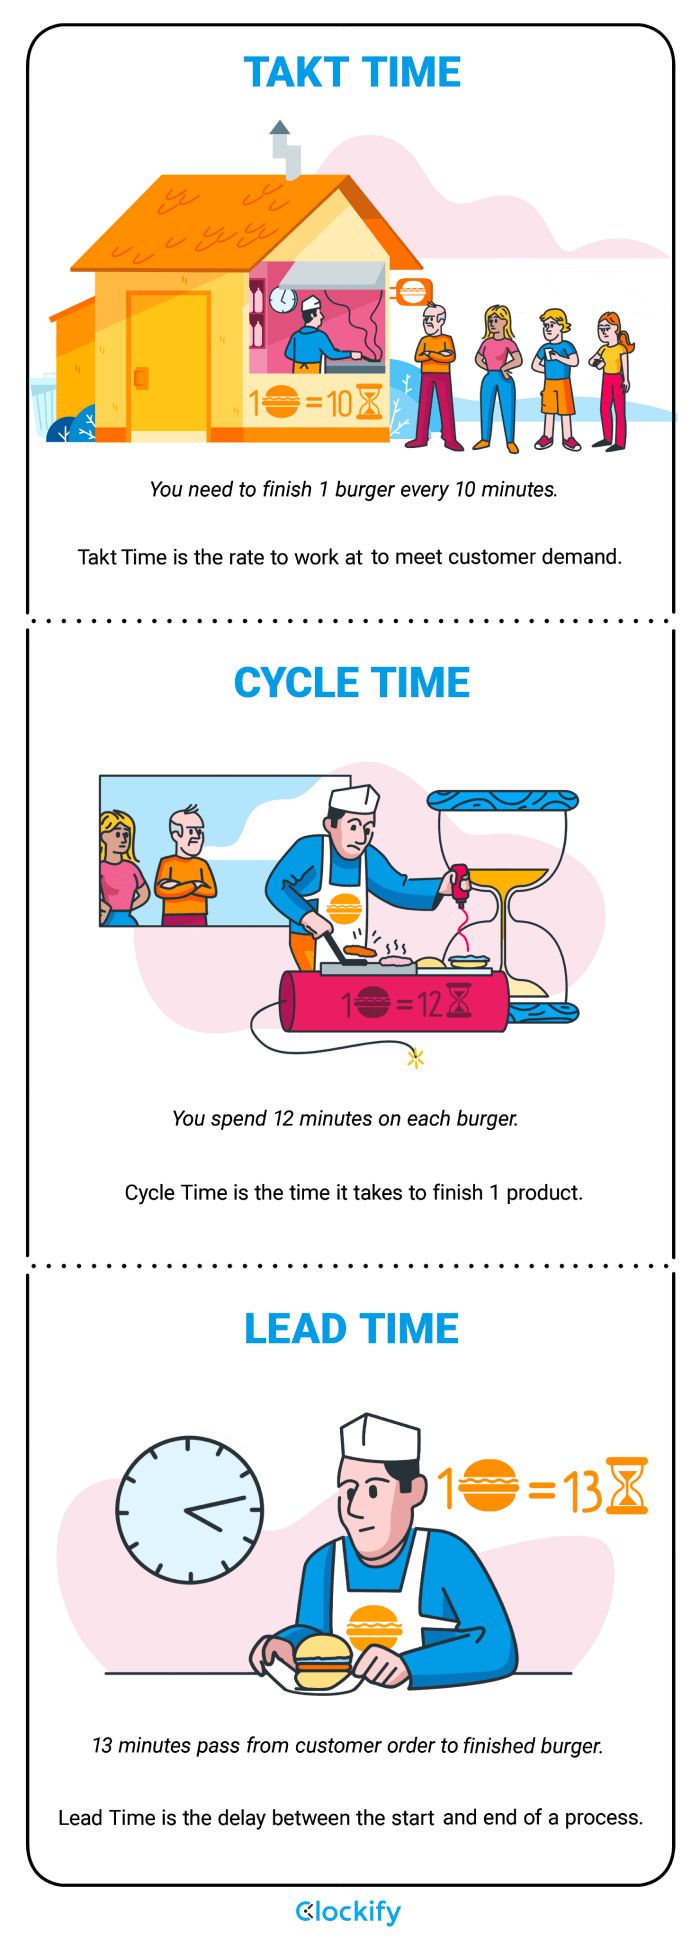 Takt-cycle-lead time infographic-clockify